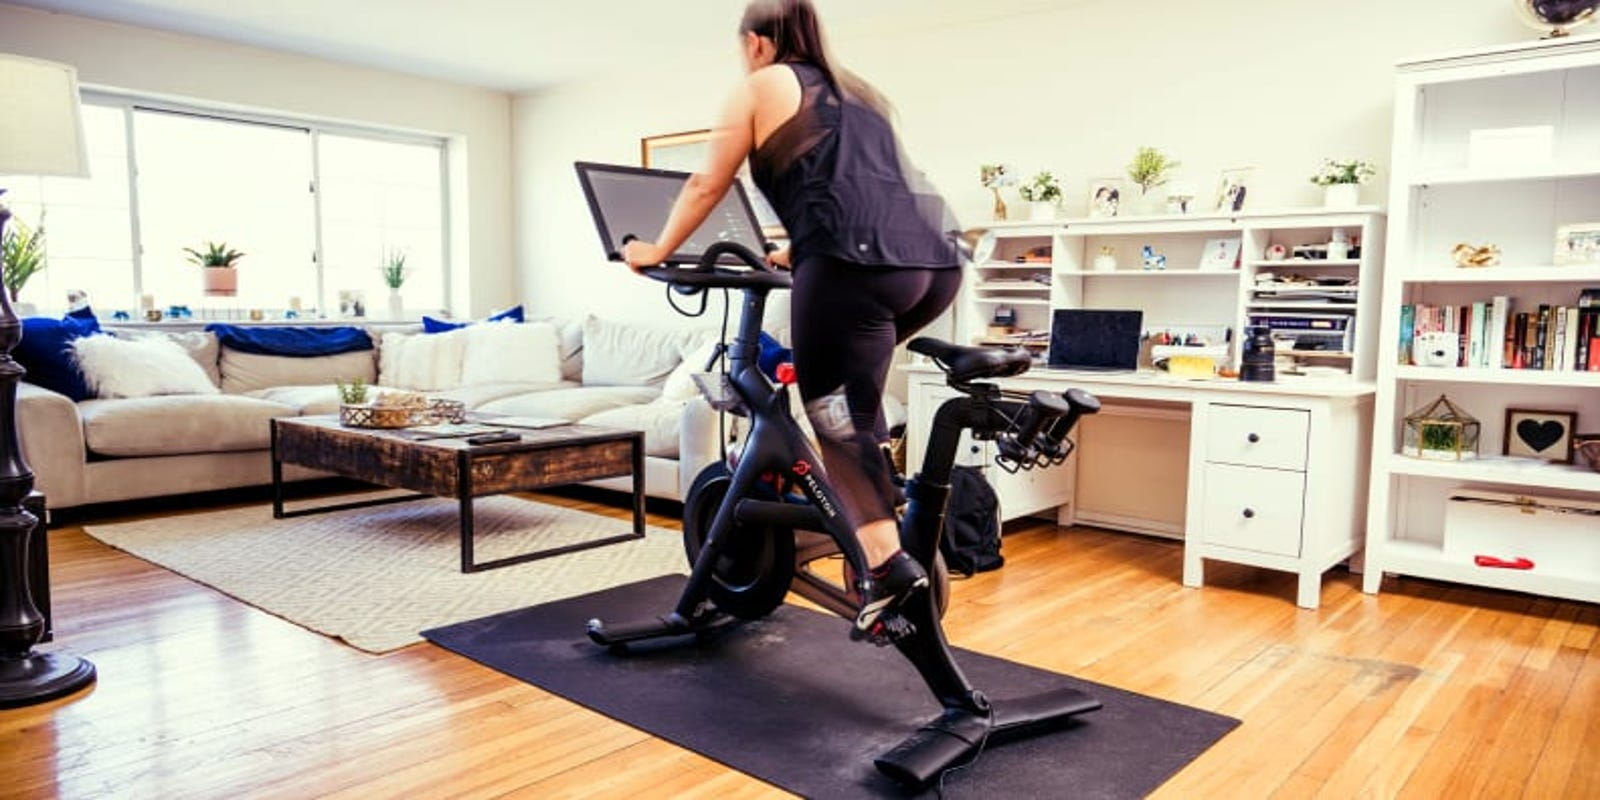 25 ways to take your favorite workout classes at home